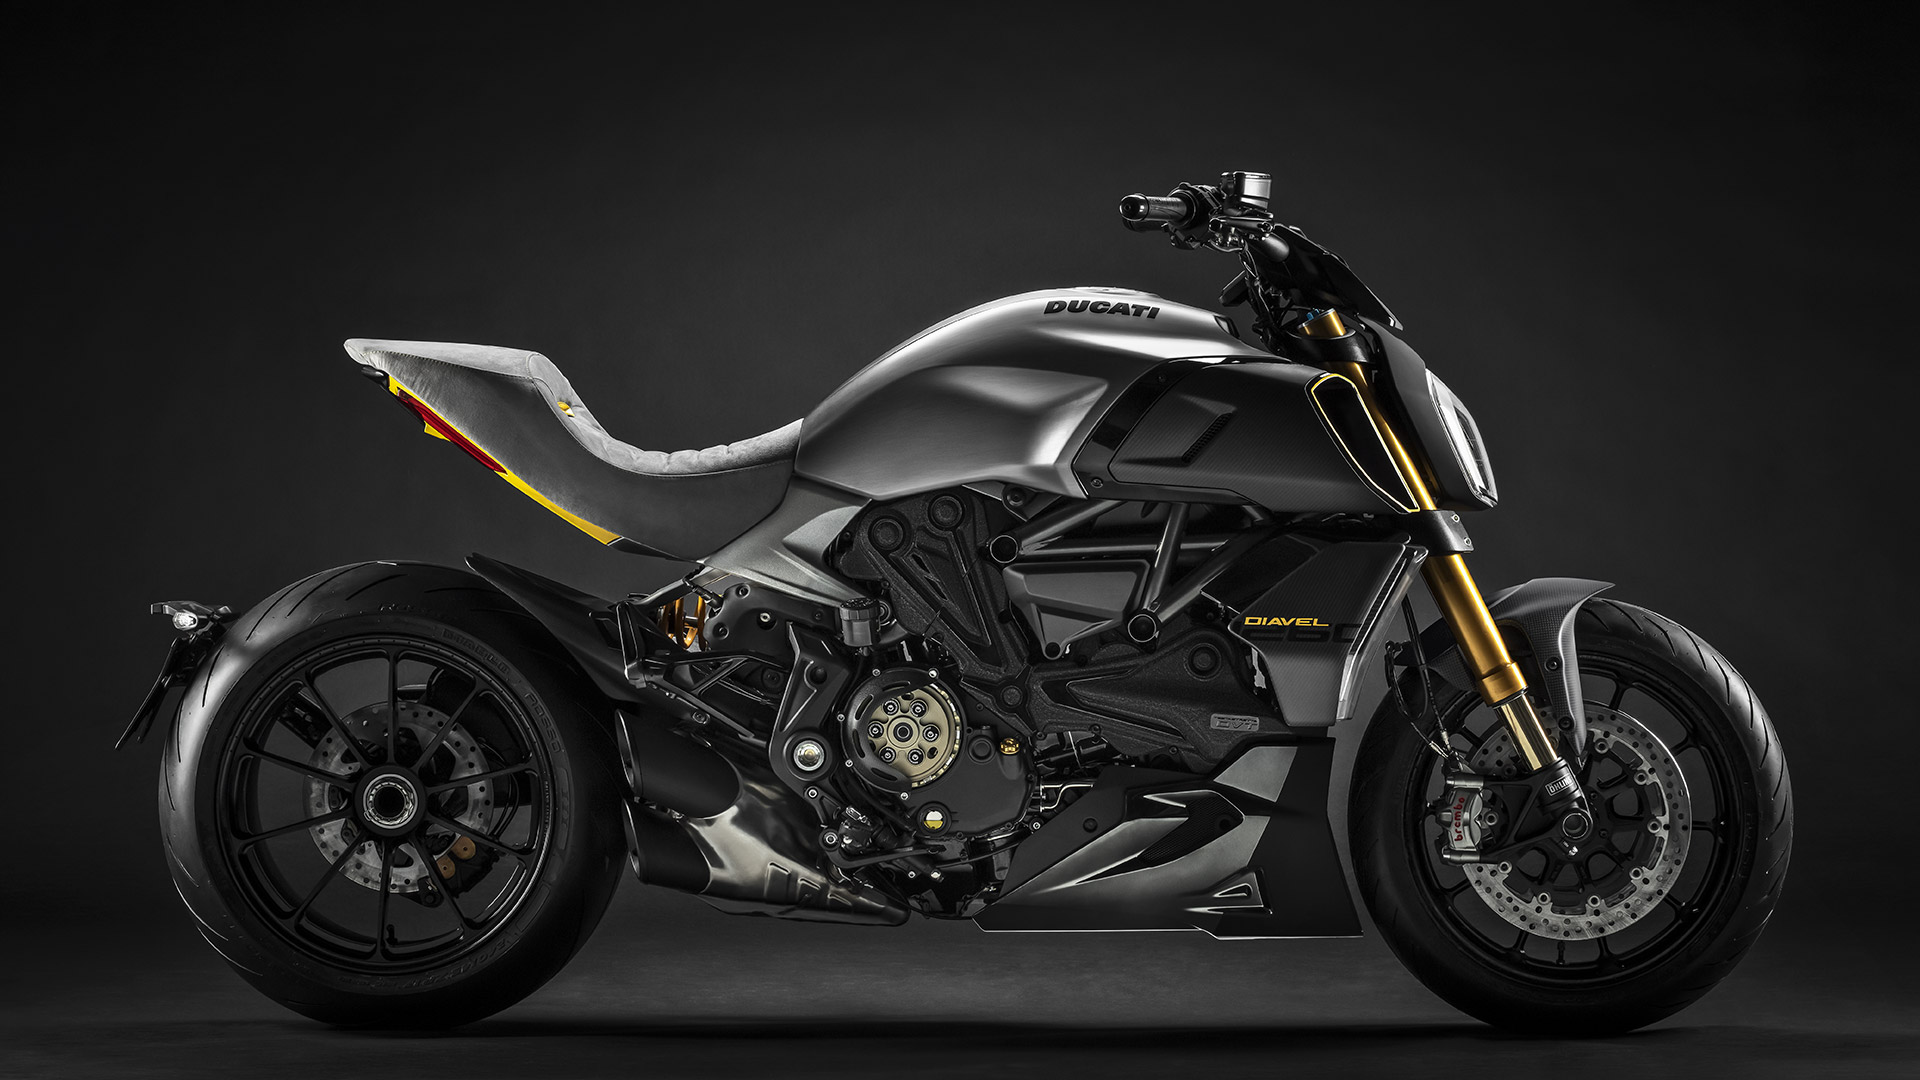 Diavel-1260-Design-Week-01-Gallery-1920x1080.jpg